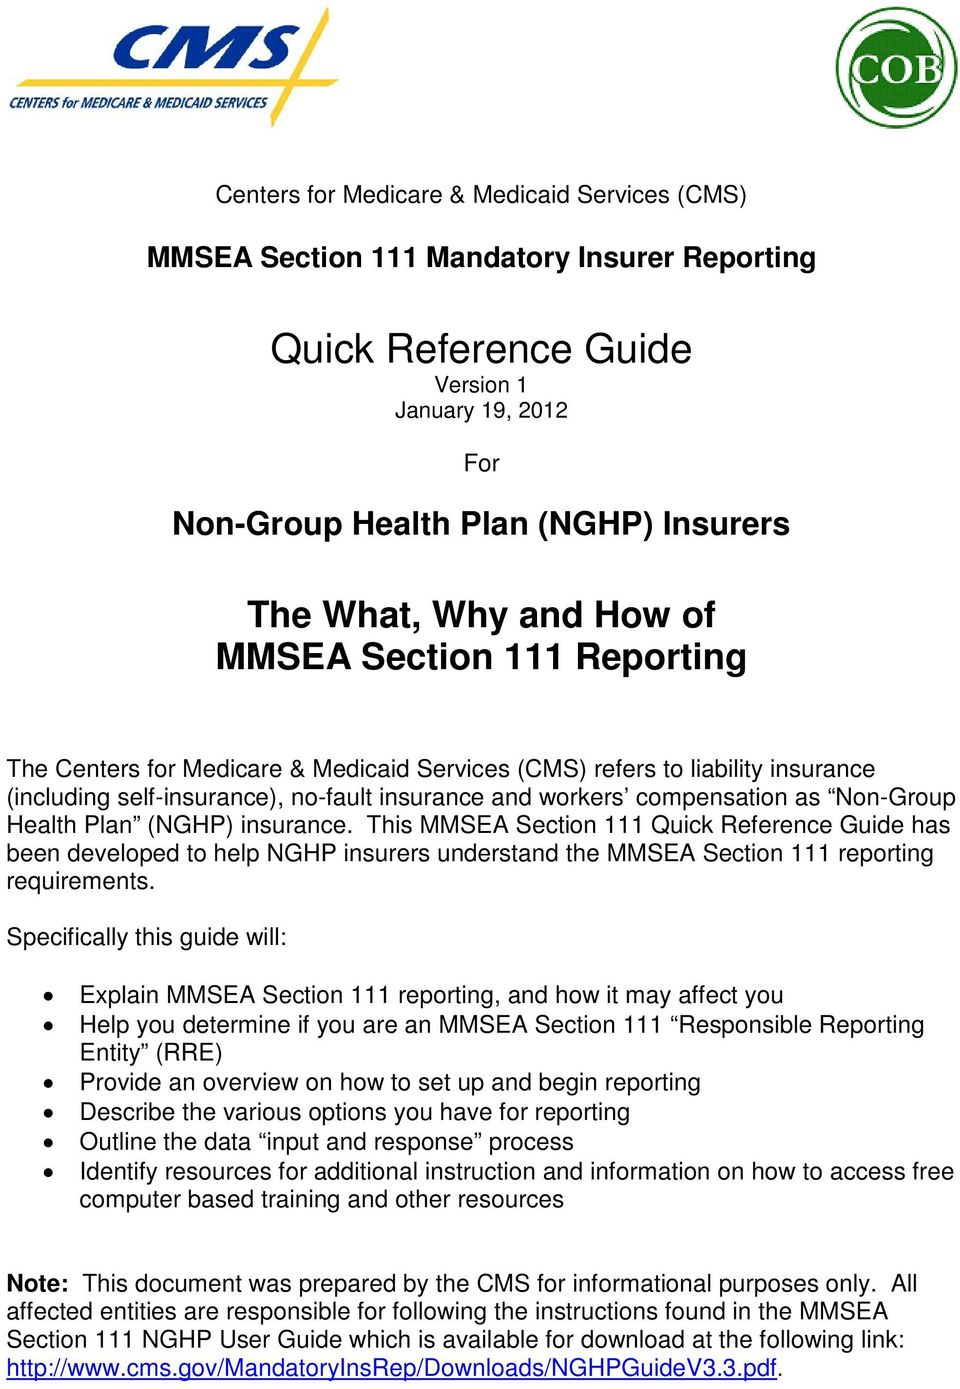 Non-Group Health Plan (NGHP) insurance. This MMSEA Section 111 Quick Reference Guide has been developed to help NGHP insurers understand the MMSEA Section 111 reporting requirements.